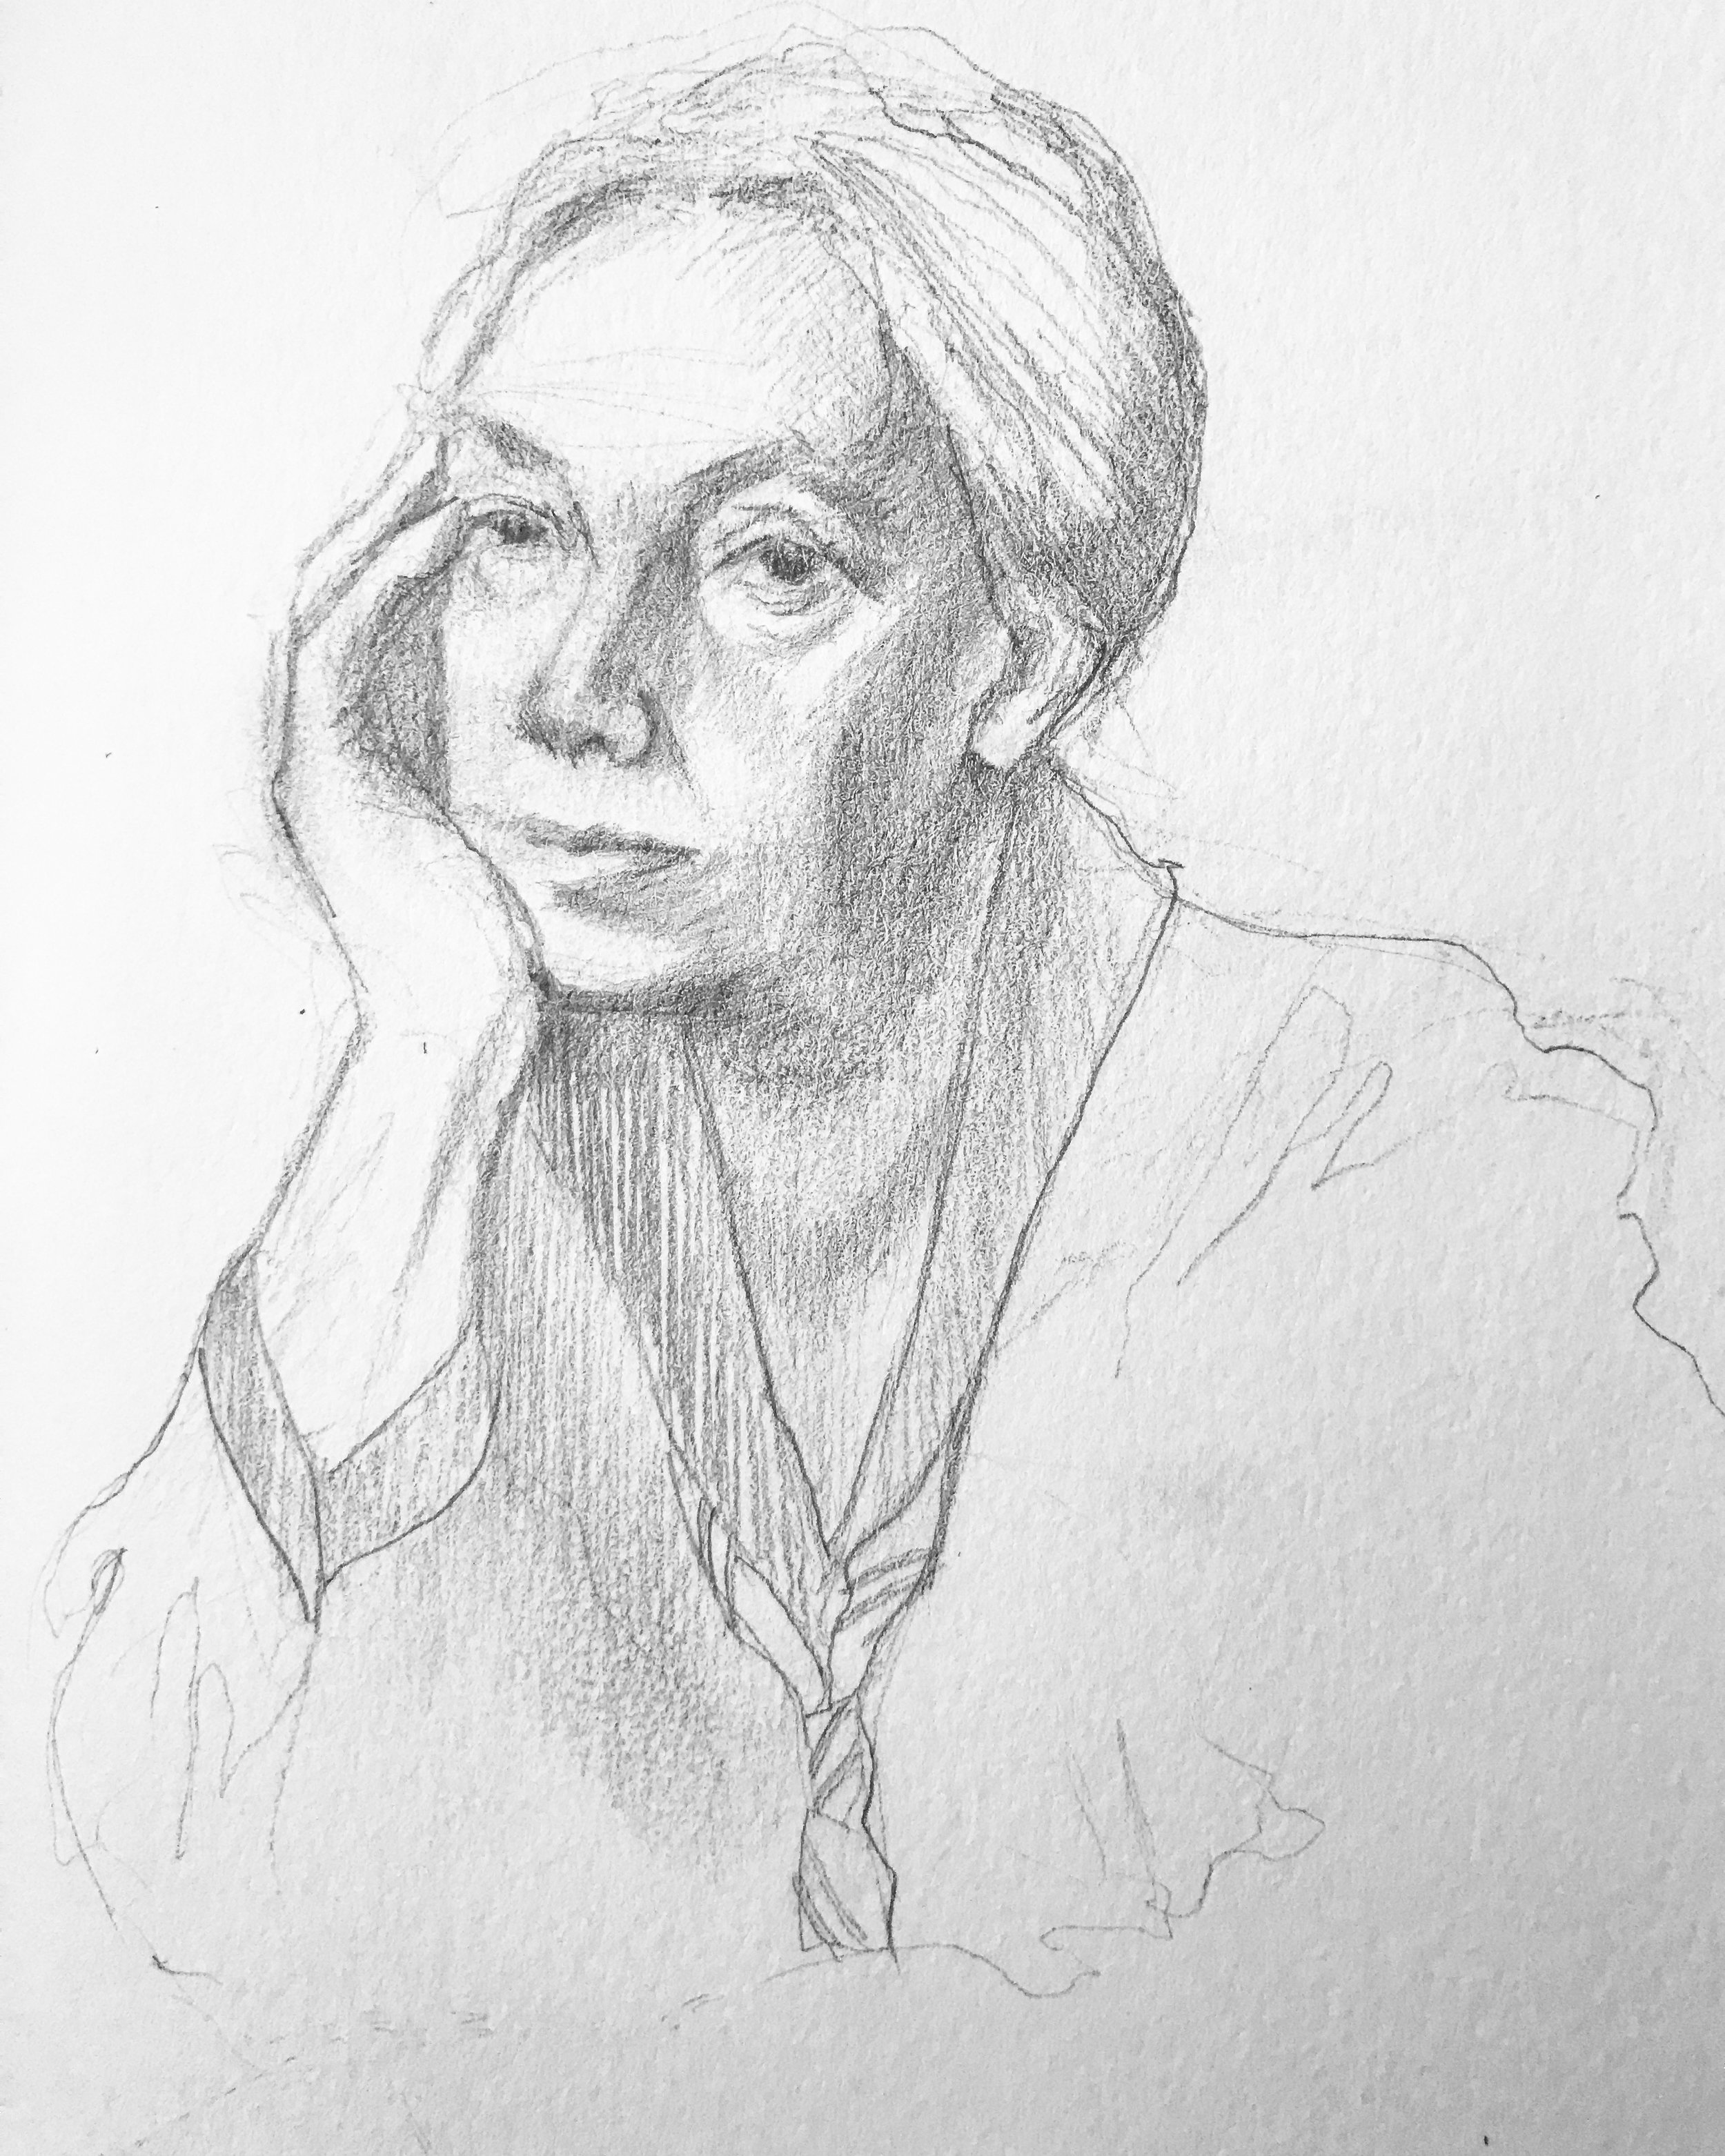 My sensitive sketch of Kathe Kollwitz.